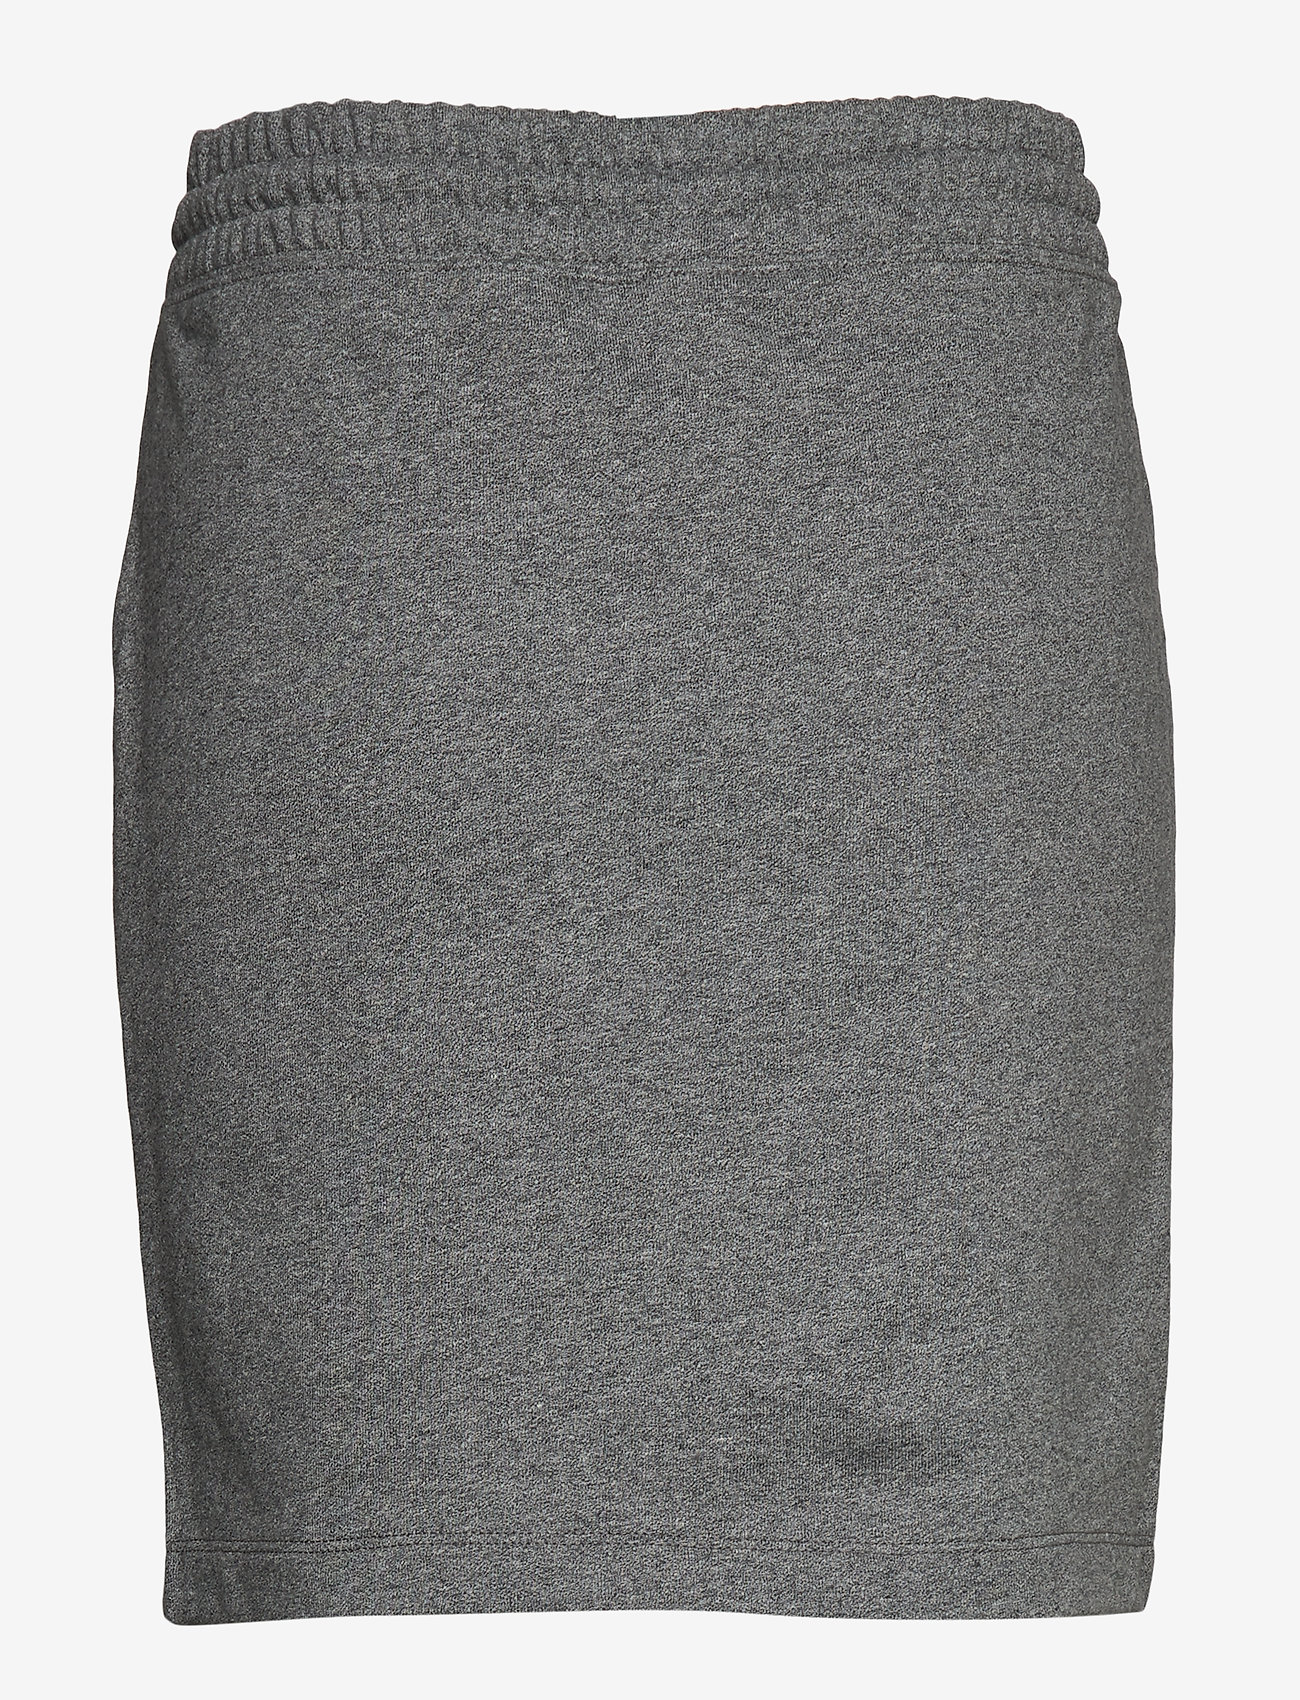 Champion - Skirt - sports skirts - graphite grey melange jasp - 1